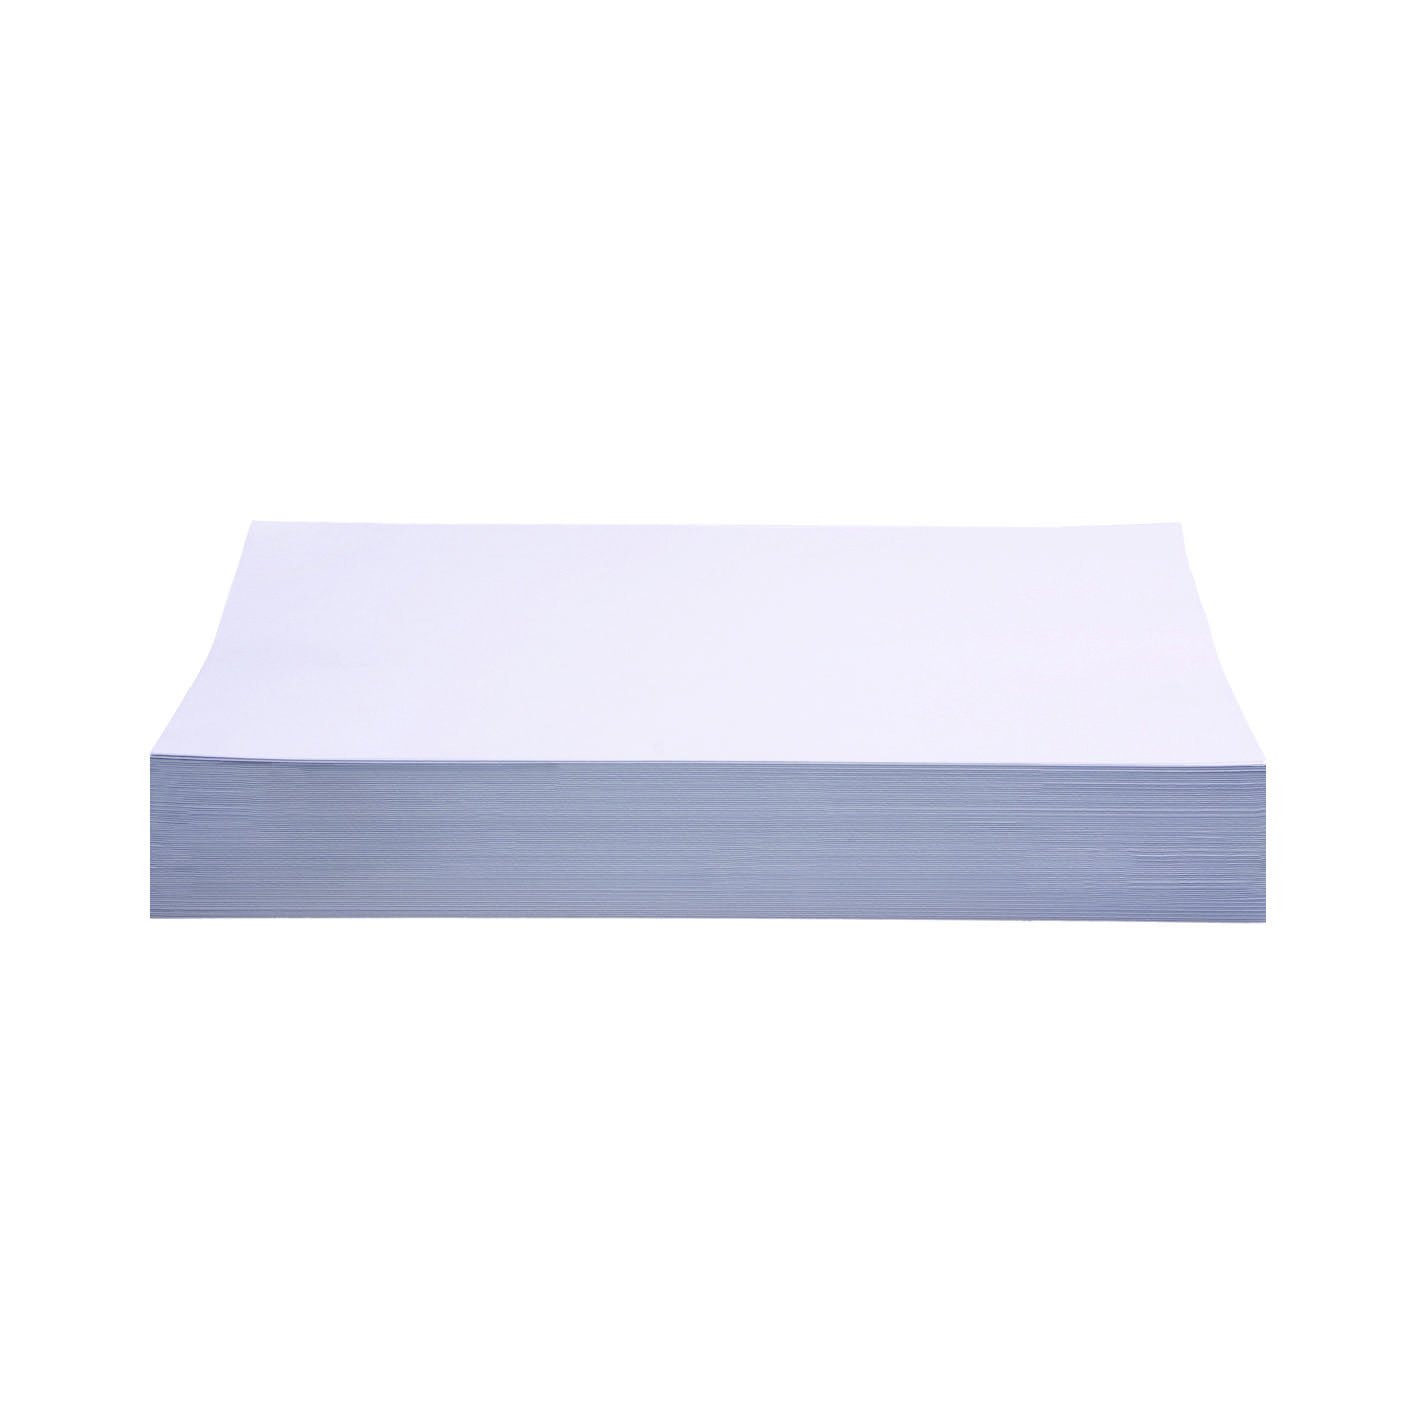 Initiative Multipurpose Office Paper A3 80gsm White PEFC with Colorlok Pack 500 Sheets